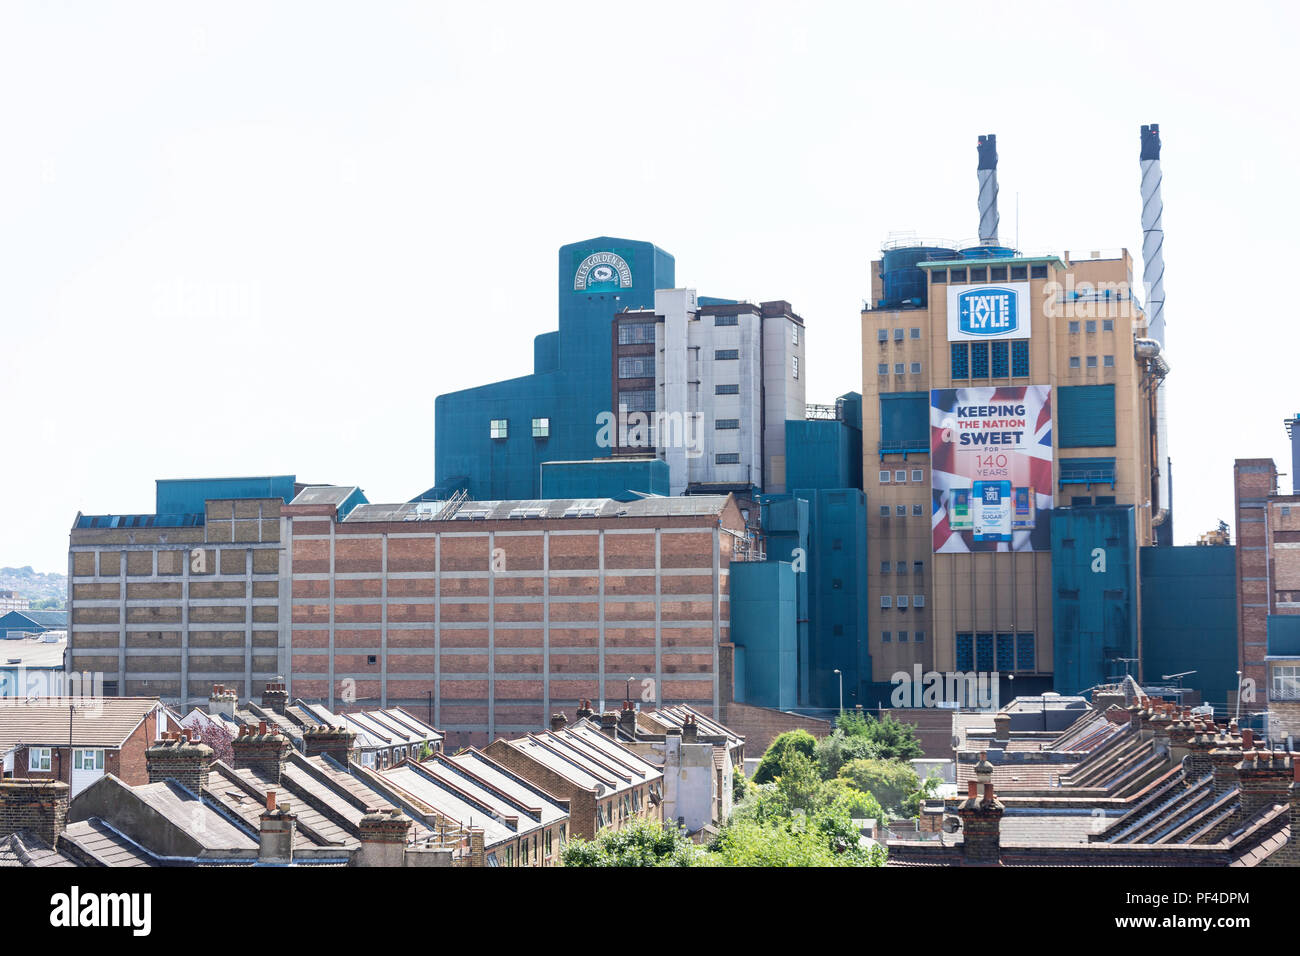 Tate & Lyle sugar factory, Silvertown, London Borough of Newham, Greater London, England, United Kingdom - Stock Image